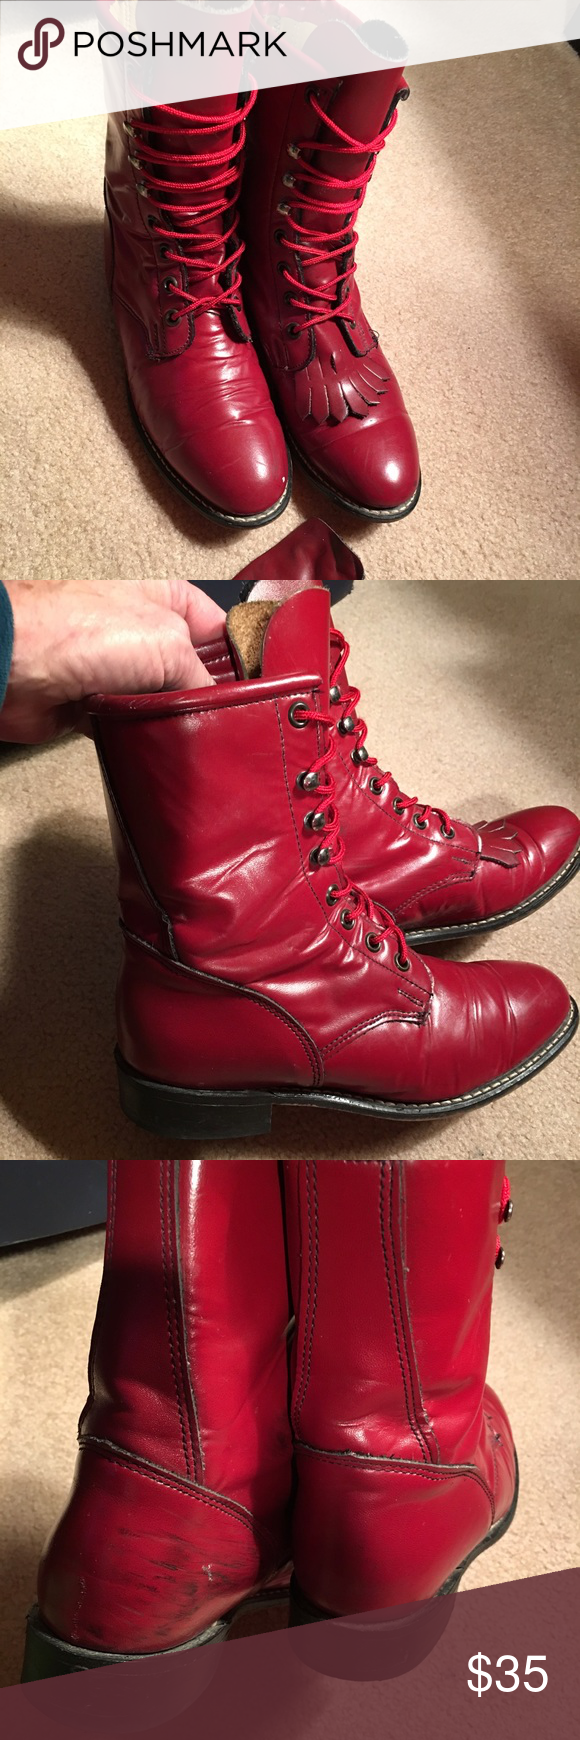 Red Leather Fringed Ankle Laced Boots. Sz 6.5 Scuff inside back heels (see pic). Otherwise great Condition. Sz 6.5. Thick Leather. Lace Up Leather Red Fringed Boots Shoes Lace Up Boots